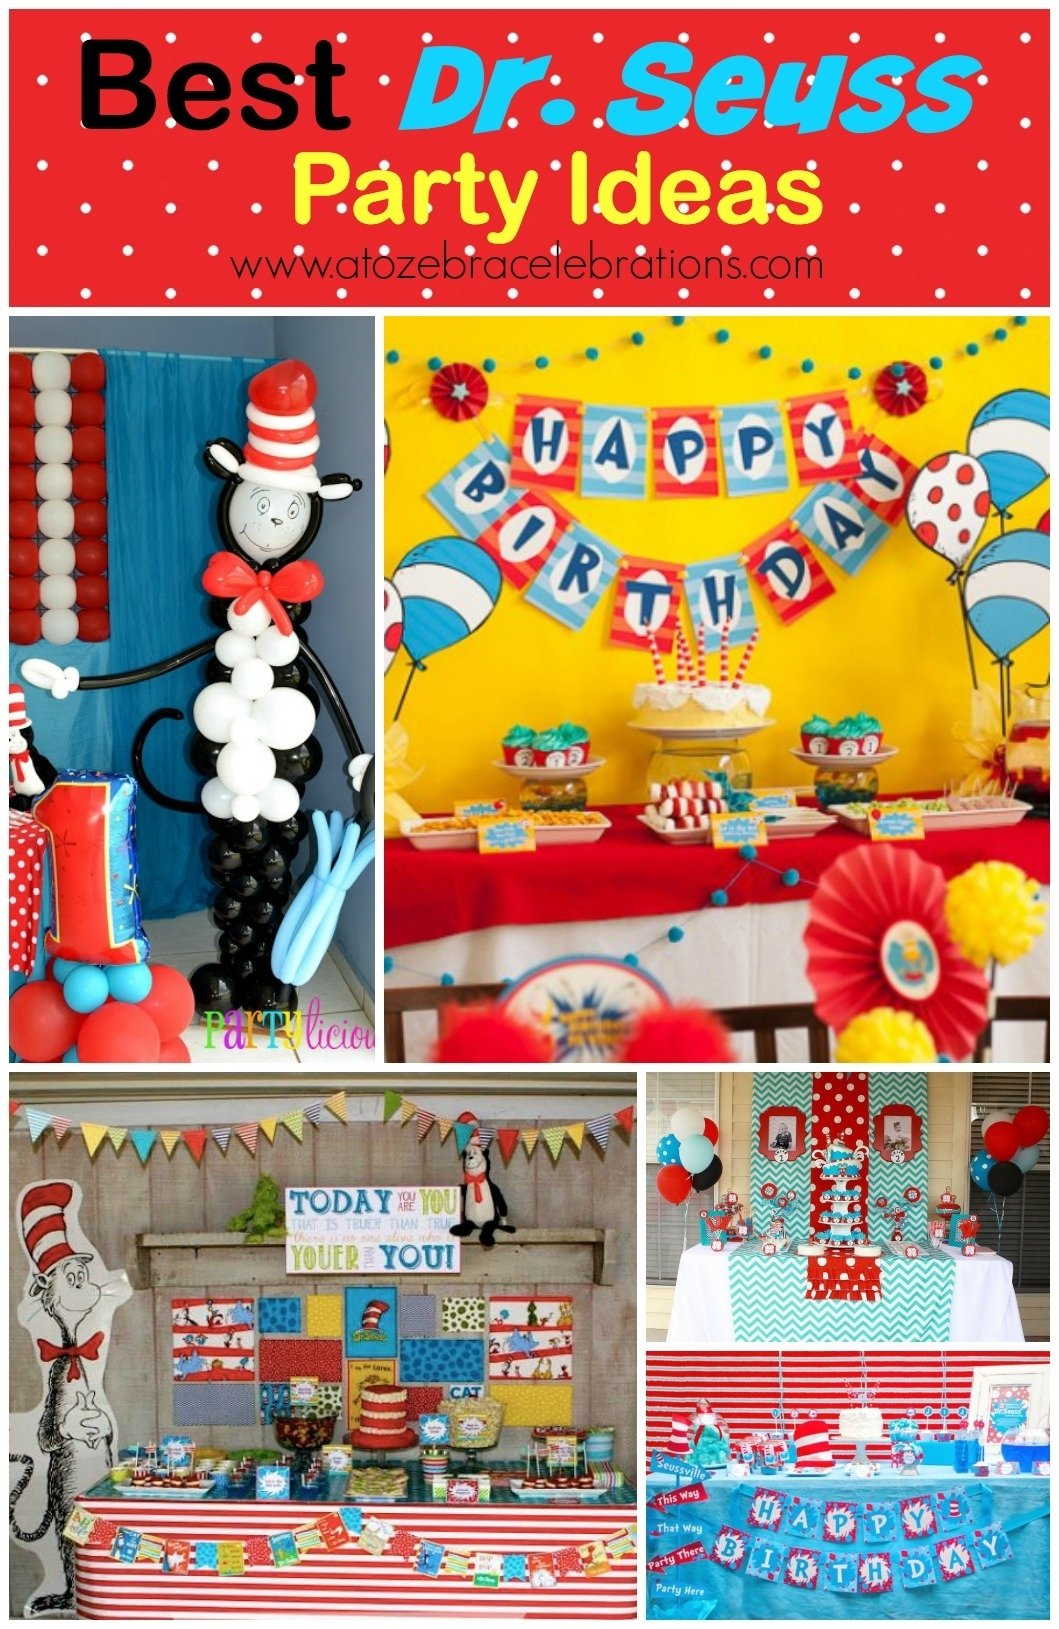 10 Beautiful Cat In The Hat Birthday Party Ideas dr seuss party ideas a to zebra celebrations 1 2020